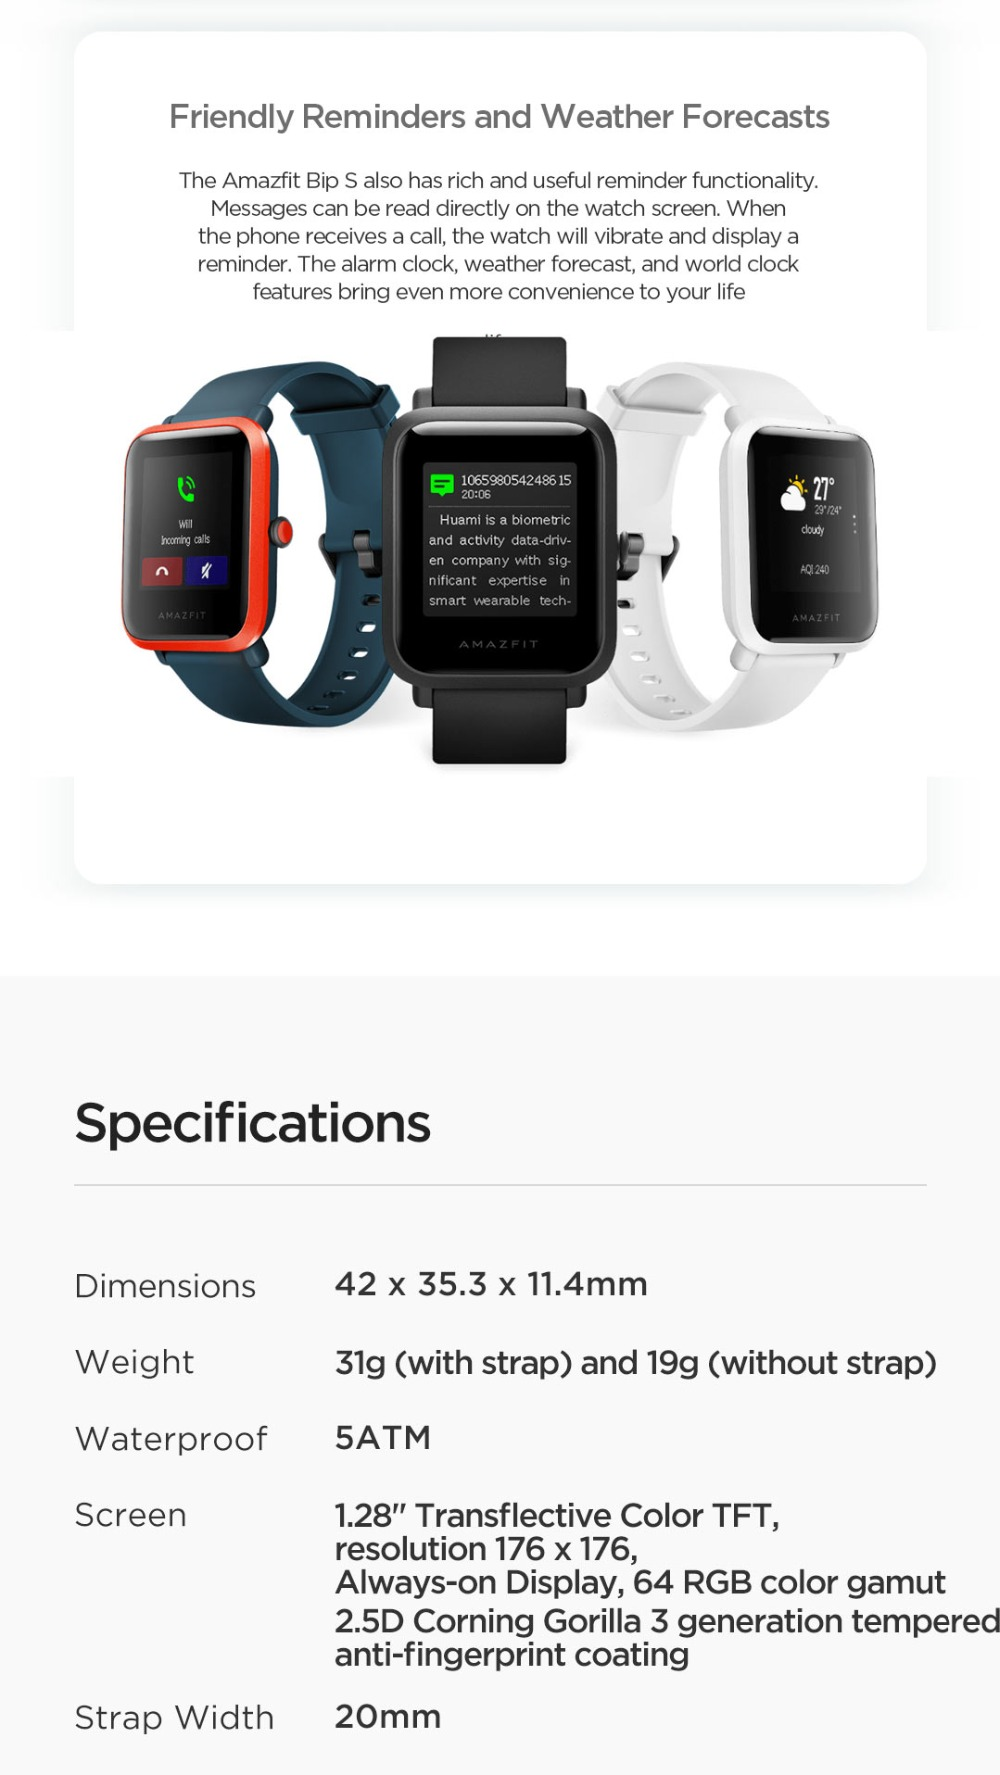 New 2020 Global Amazfit Bip S Smartwatch 5 ATM Waterproof Built-in GPS Smart Watch 40-day Battery Life Heart Rate Monitor (8)